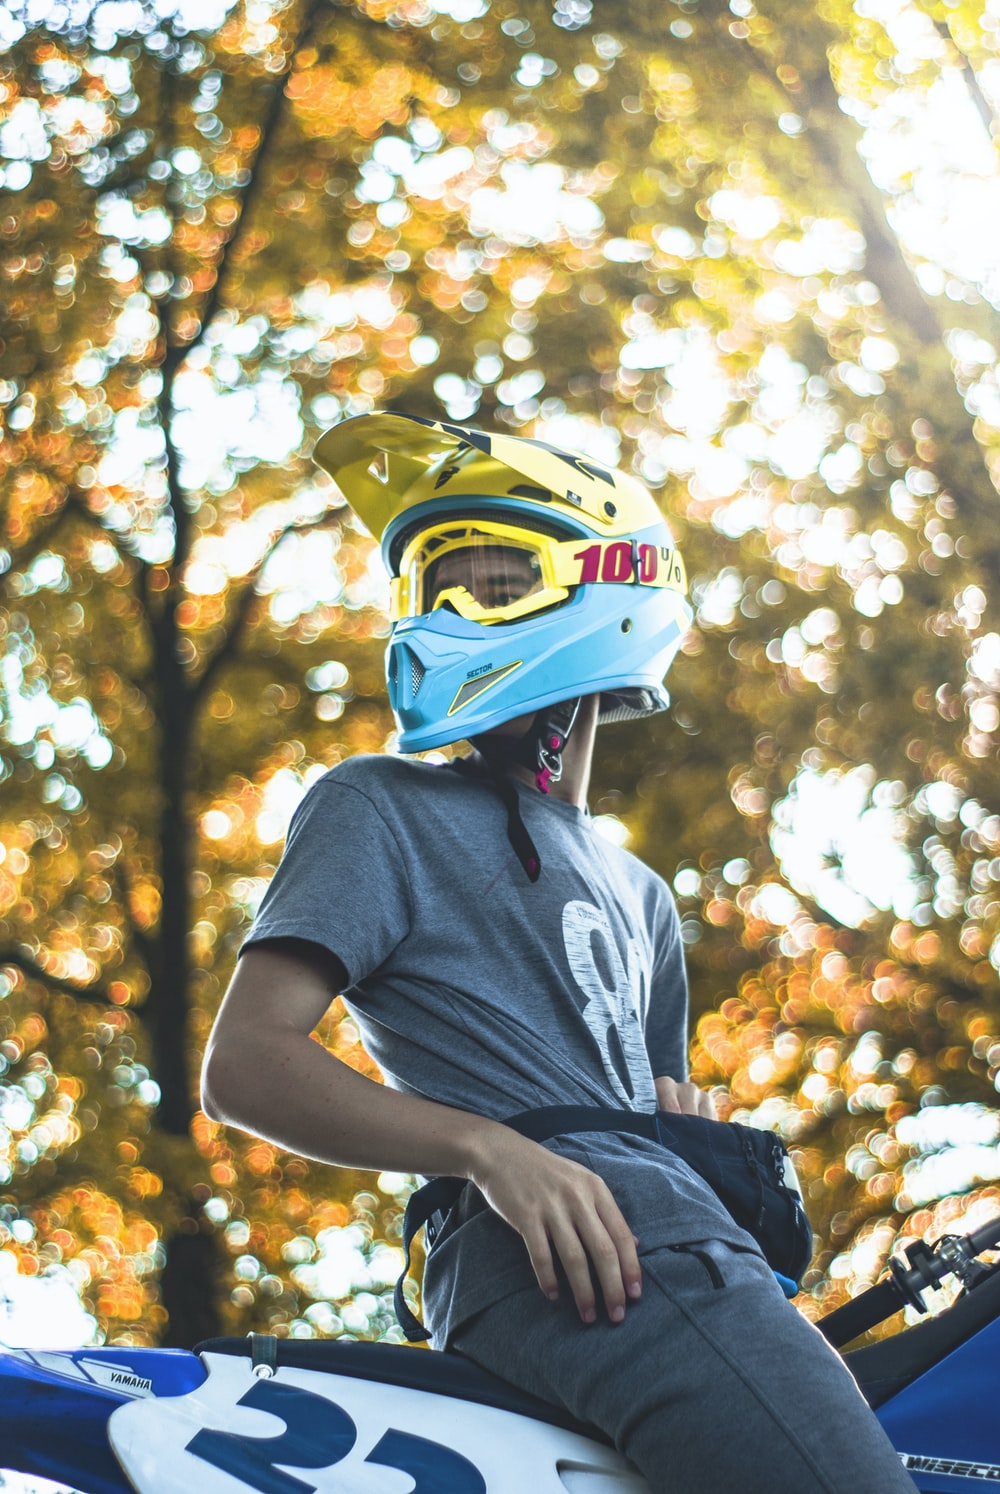 man wearing teal helmet